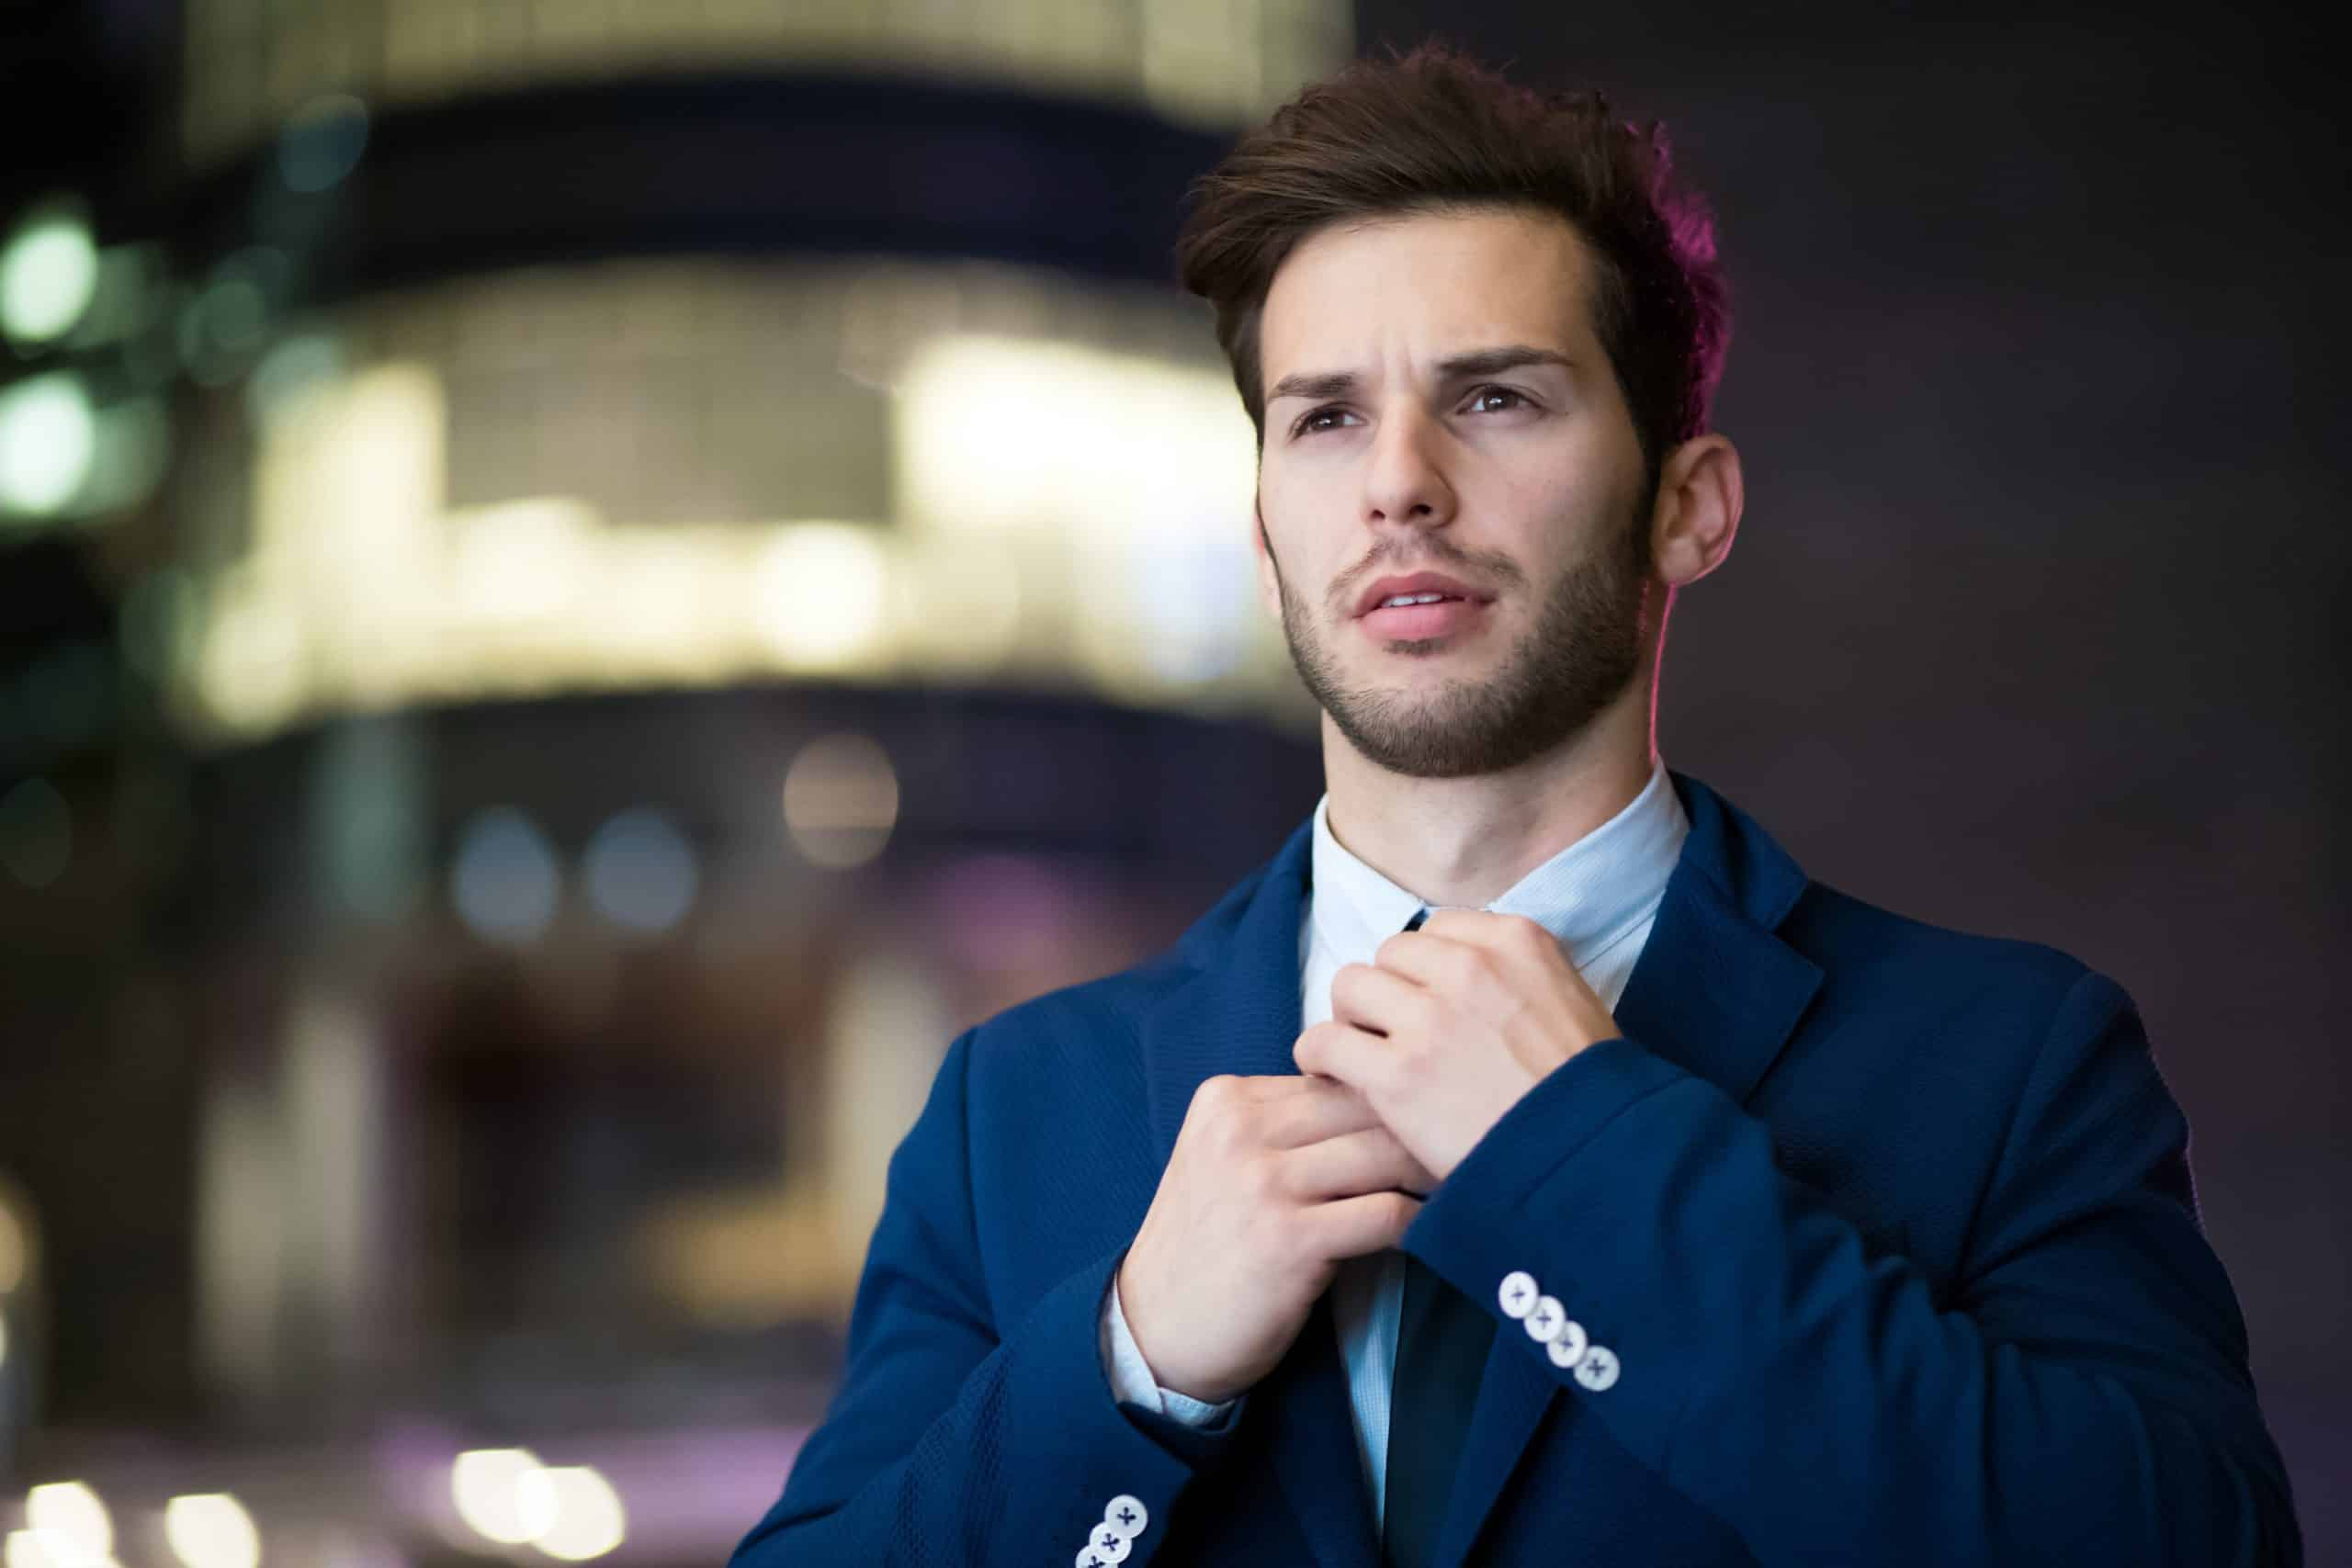 Man wearing a blue suit fixing tie